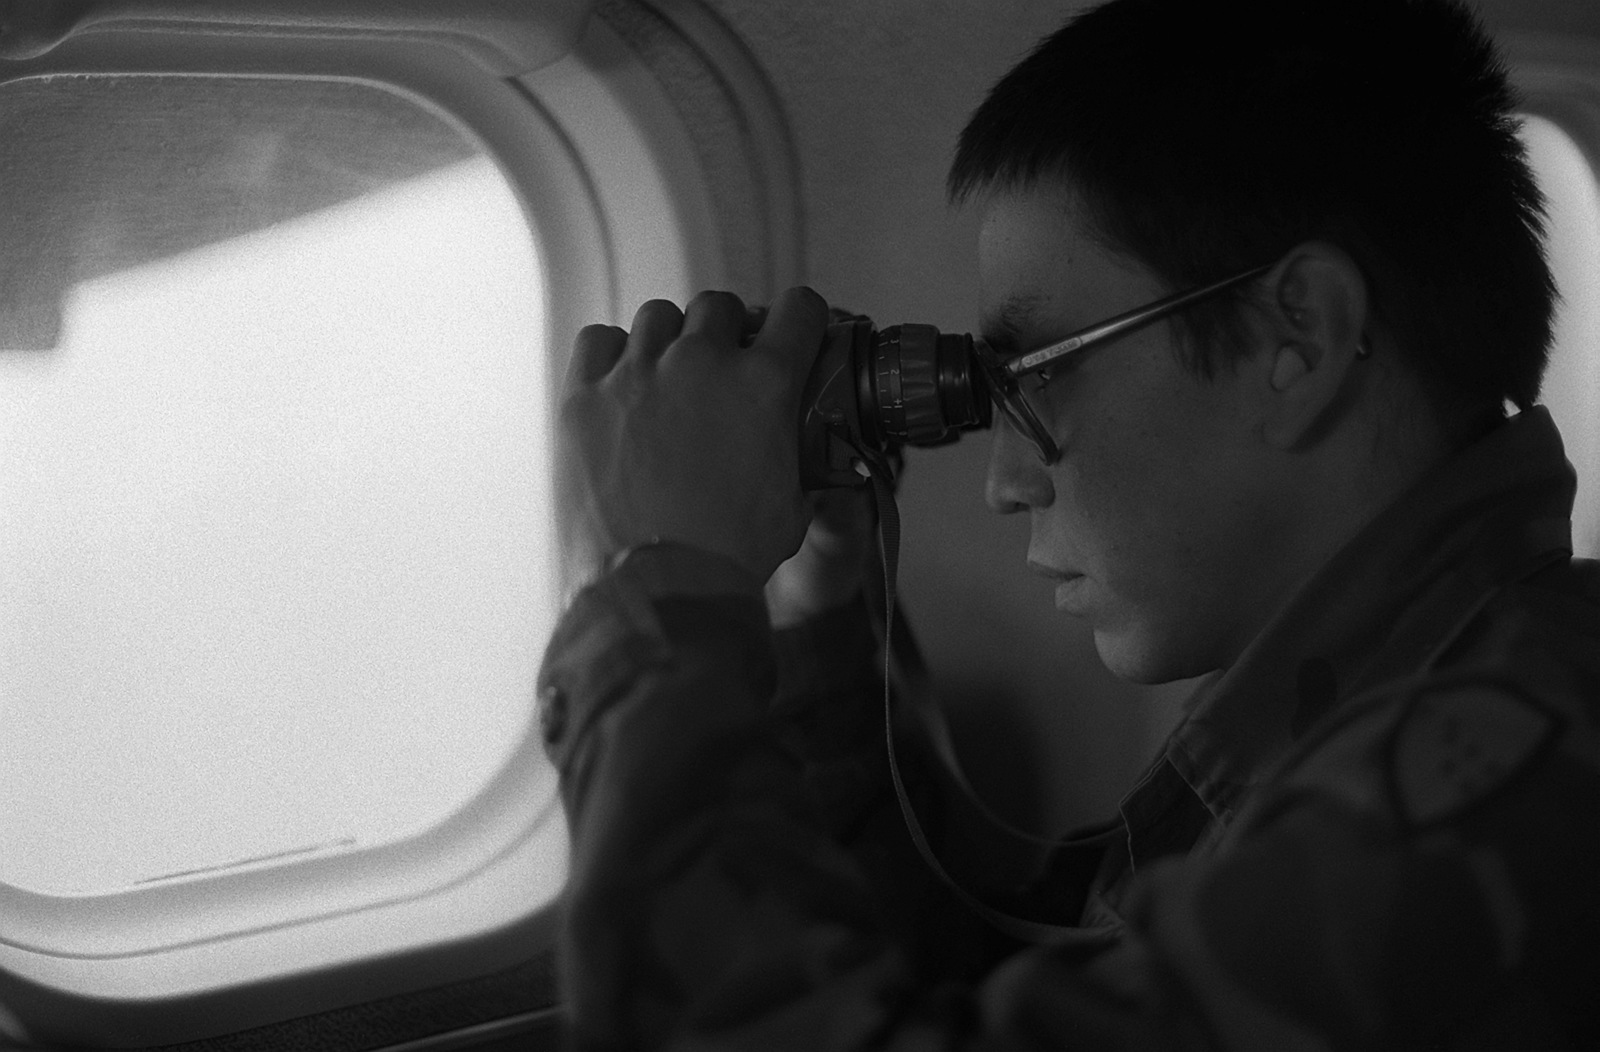 A U.S. military rescue team member uses binoculars to search for seven walrus hunters missing since June 2nd. Searchers received permission to fly three Alaska Army National Guard UV-18 Twin Otter aircraft in restricted airspace after the hunters, from St